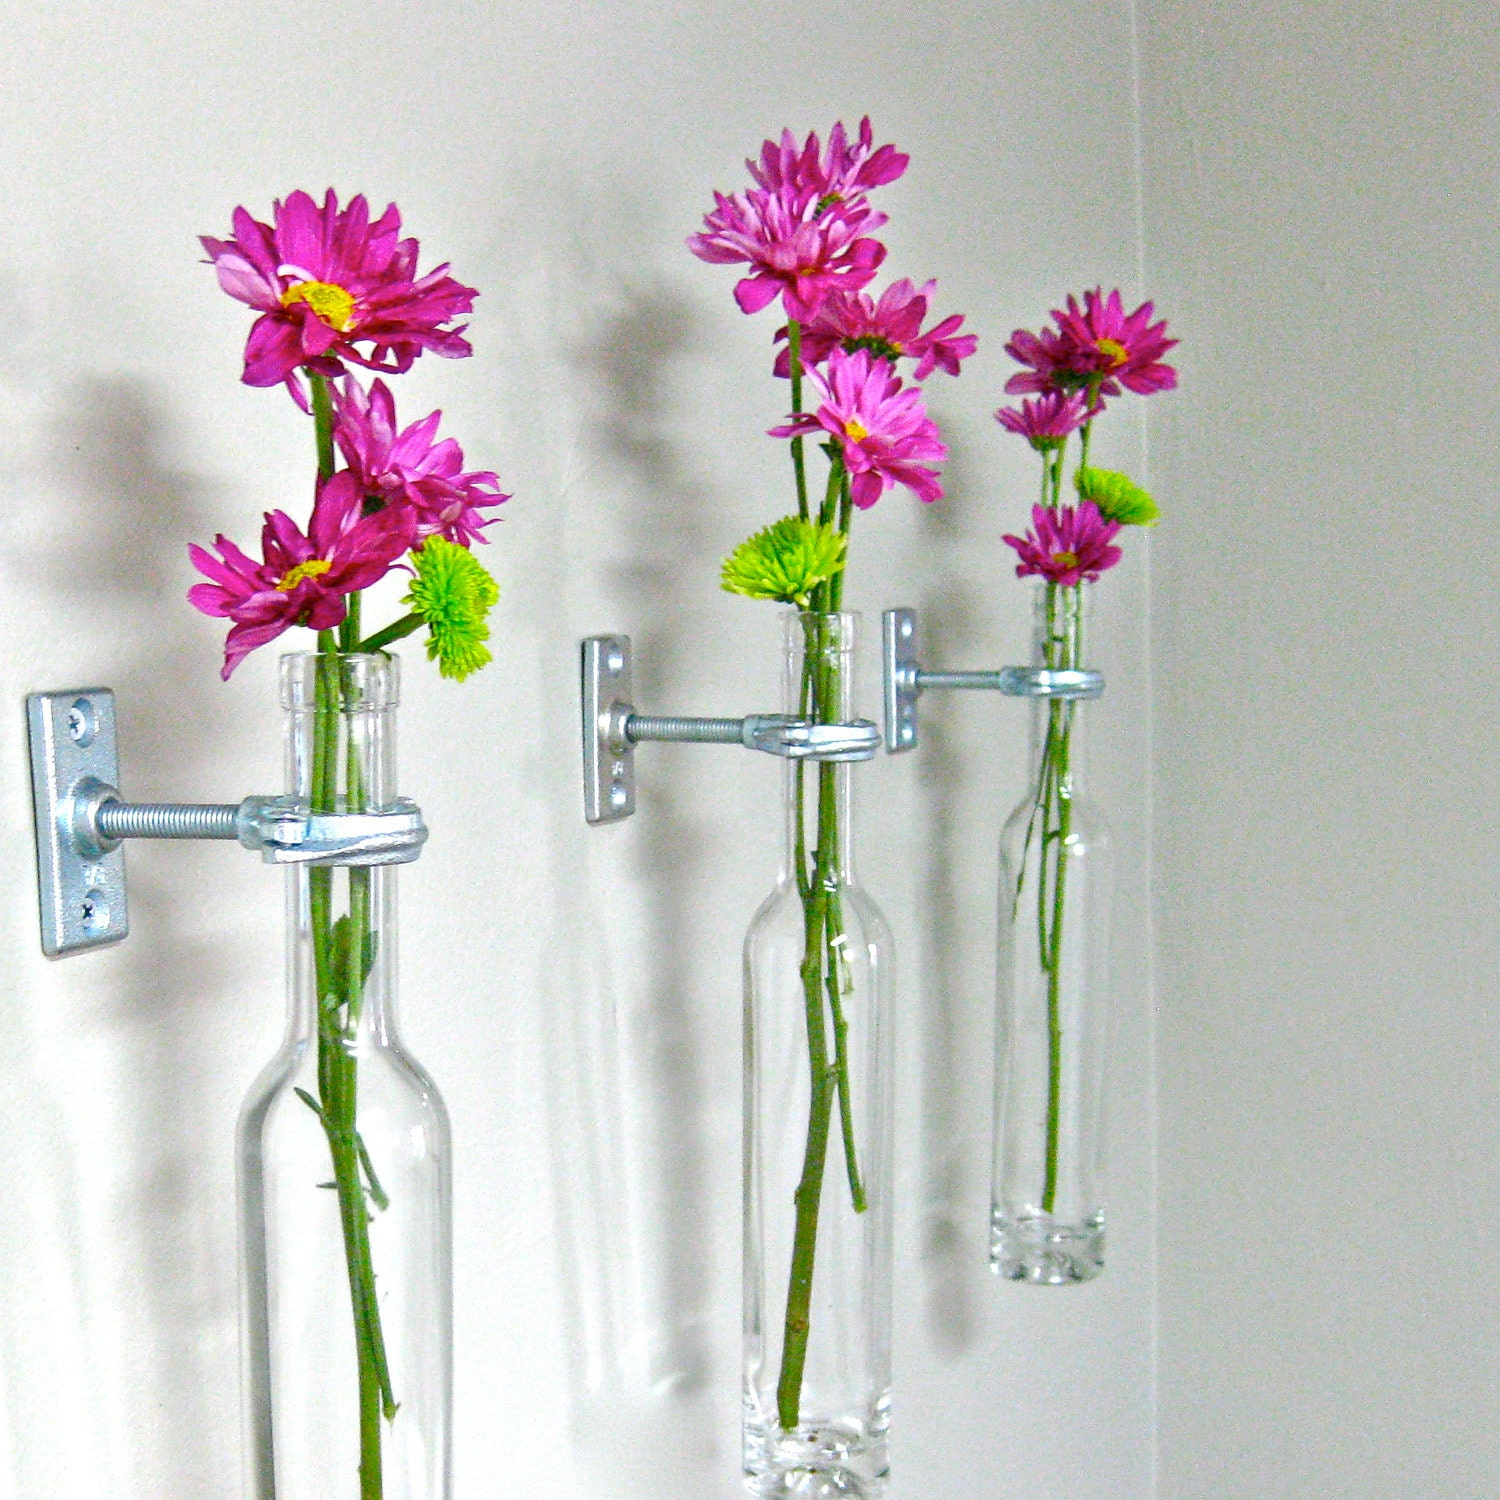 4 Wine Bottle Wall Flower Vases - Wall Sconce - Wall Decor -